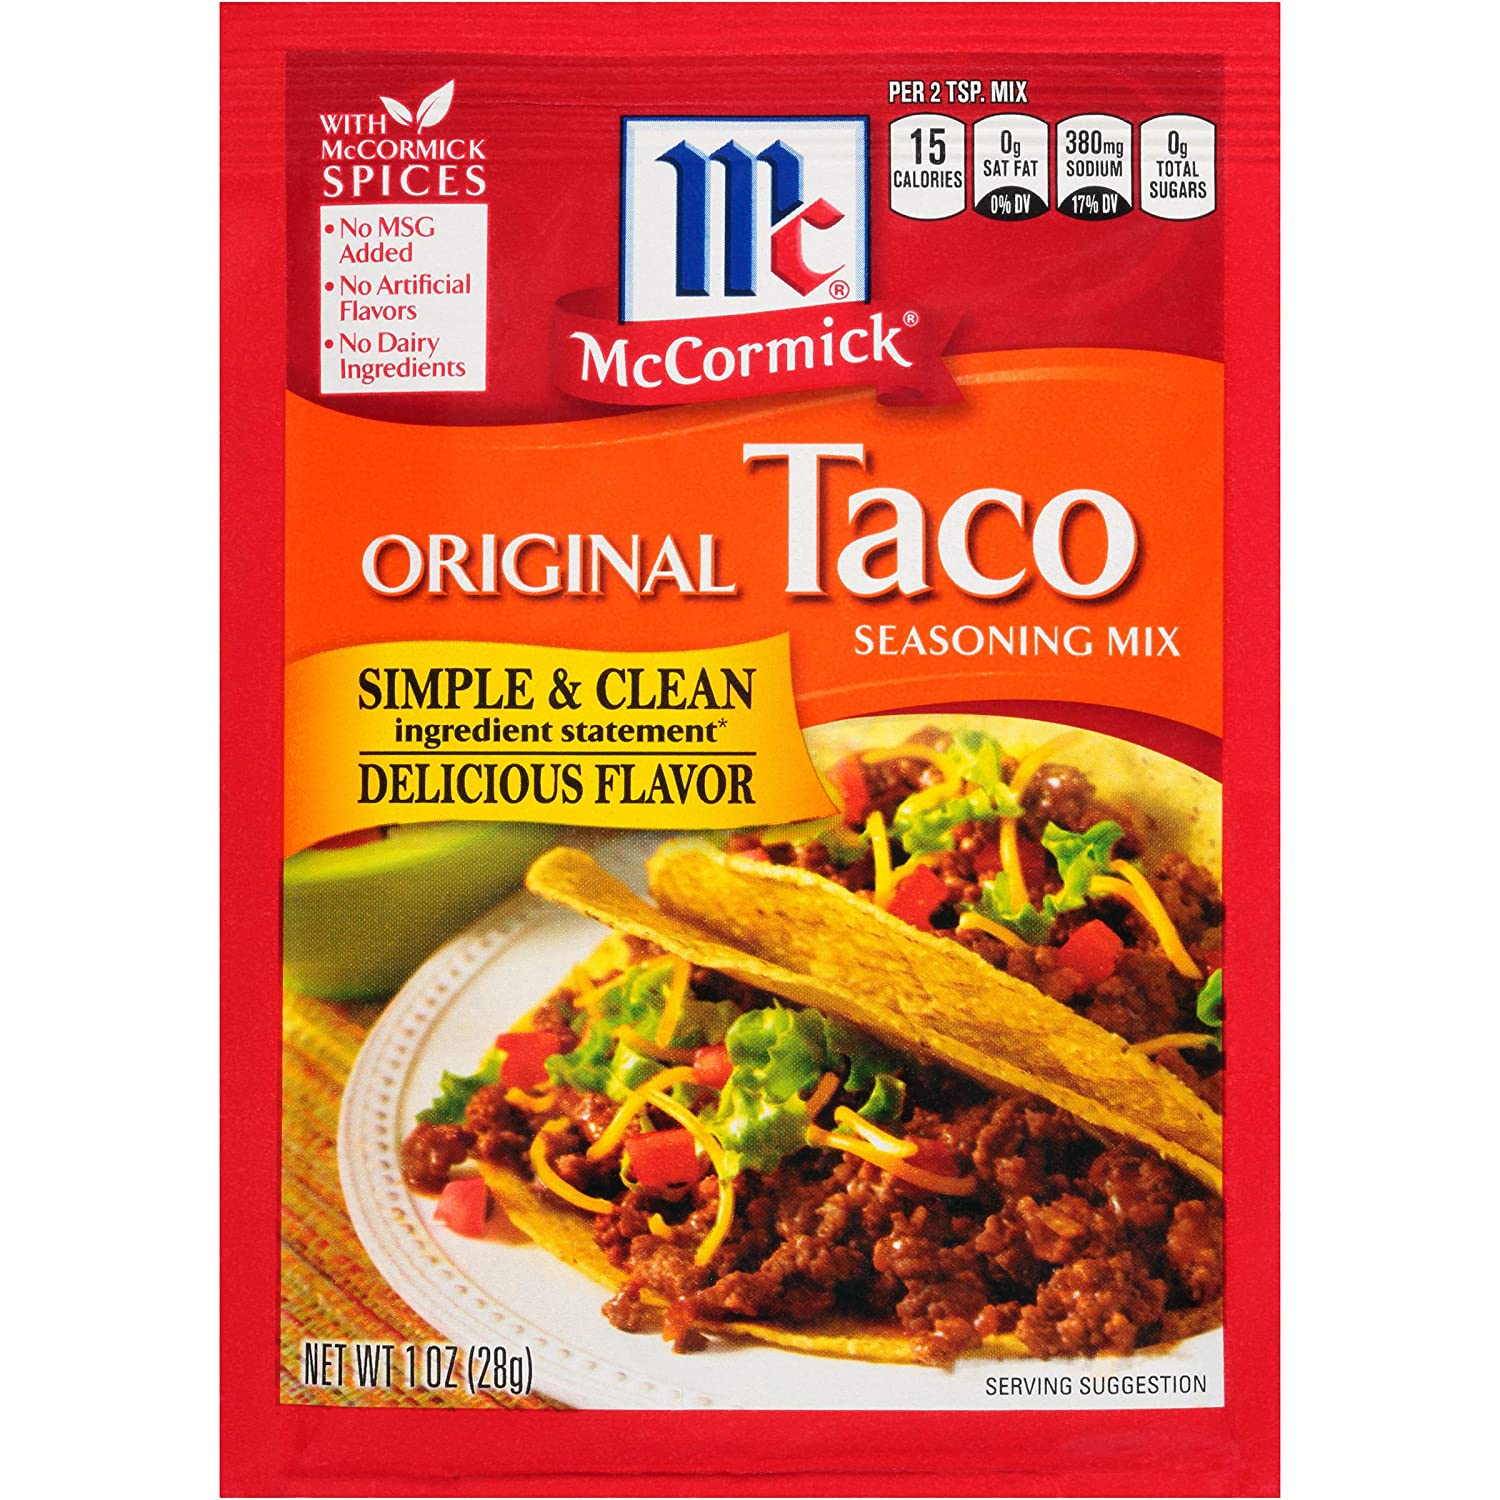 McCormick Original Taco Seasoning Mix Packet, 1 oz